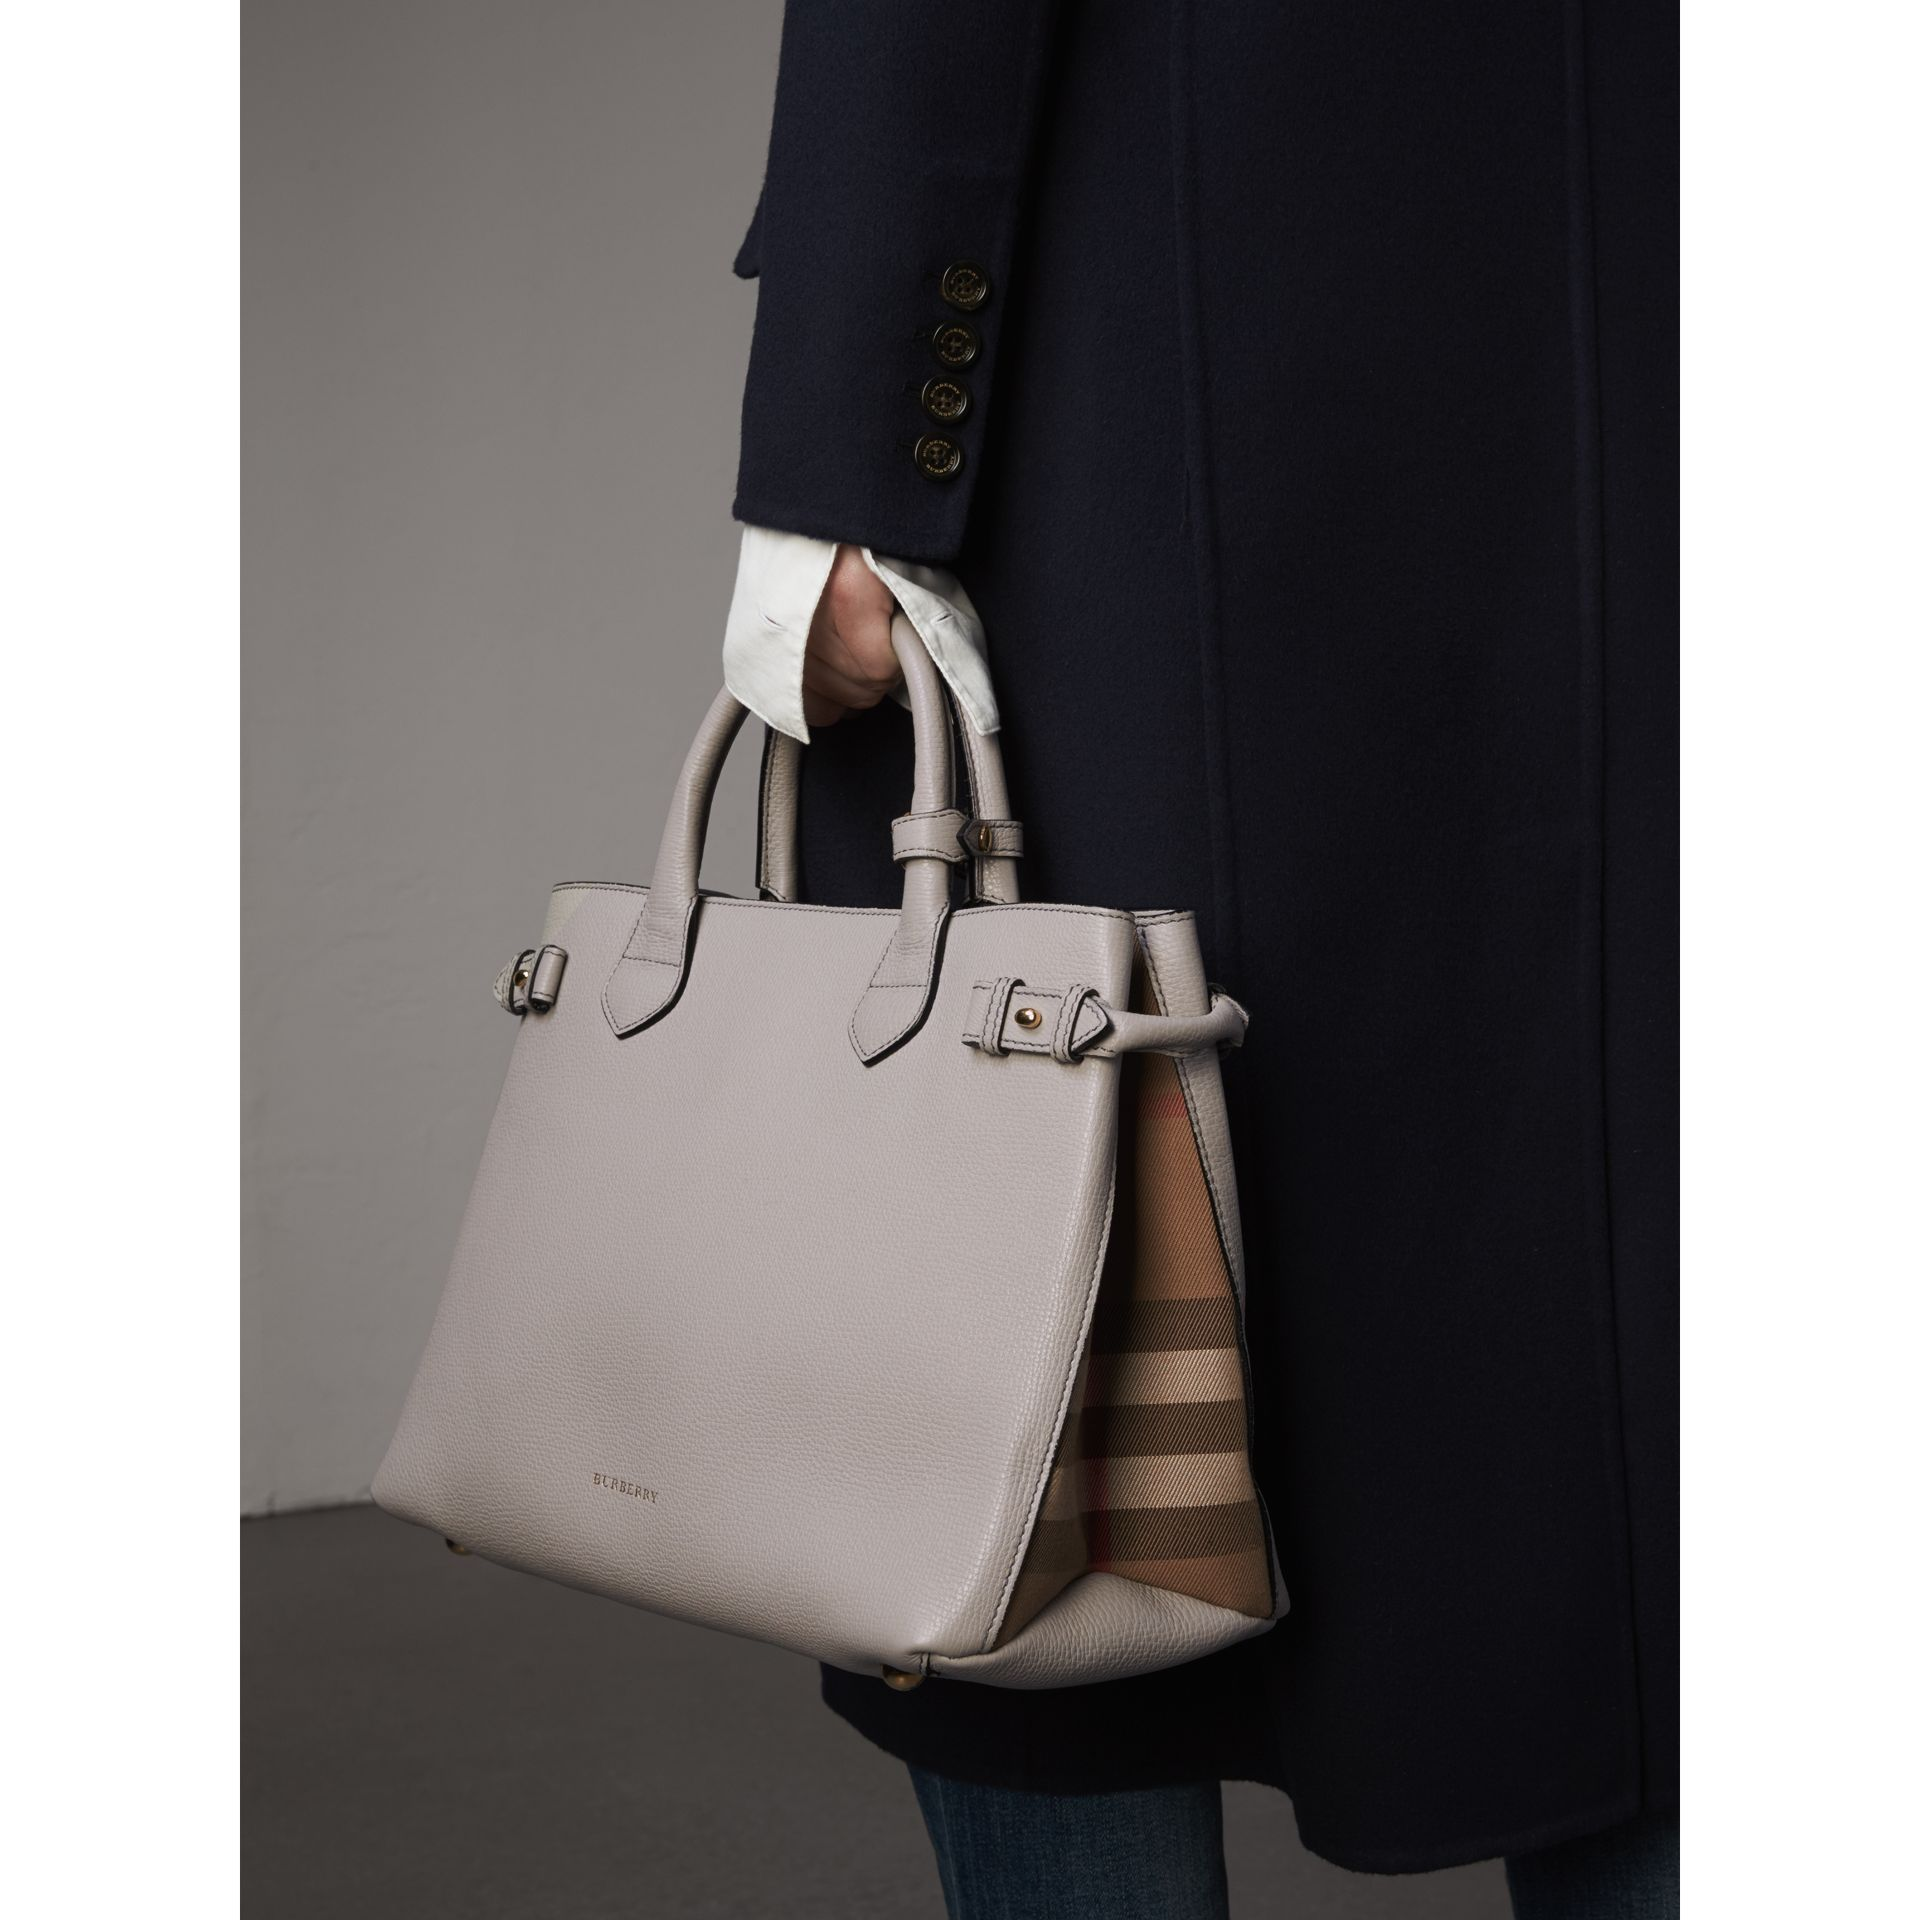 Sac The Banner medium en cuir et coton House check (Camaïeu De Gris Clairs) - Femme | Burberry - photo de la galerie 3